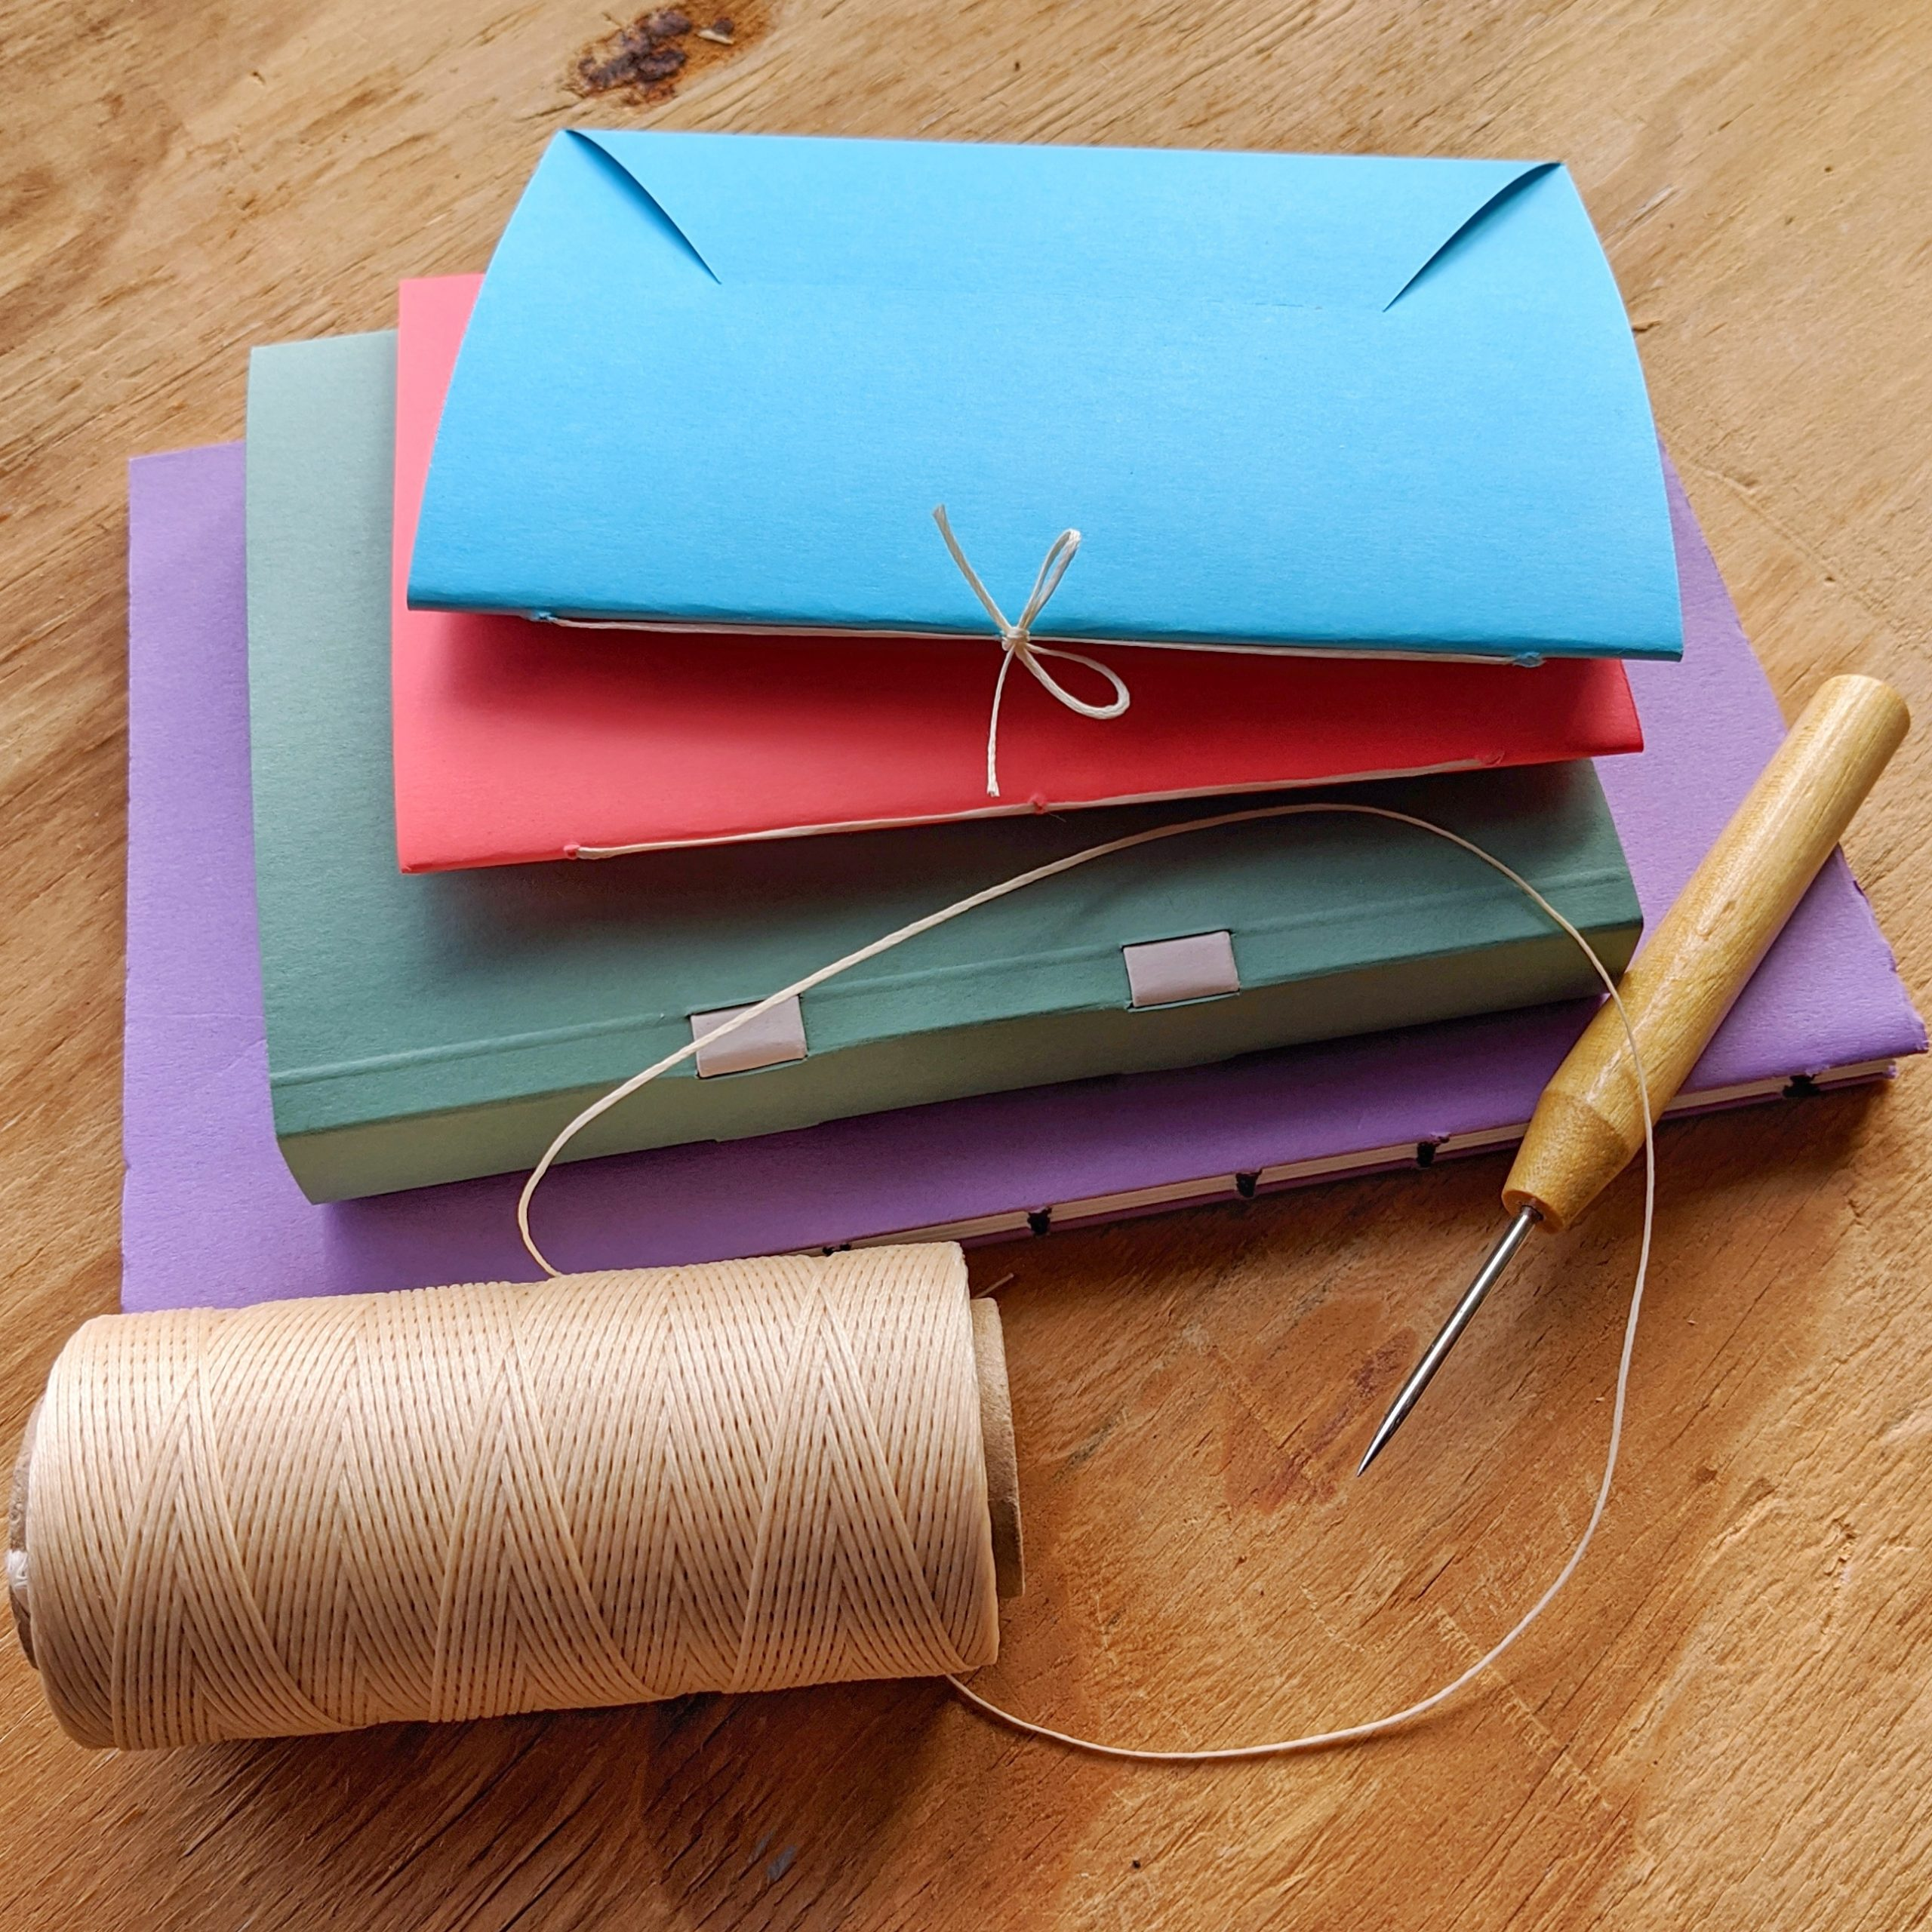 Bookbinding by Pretty Good co.